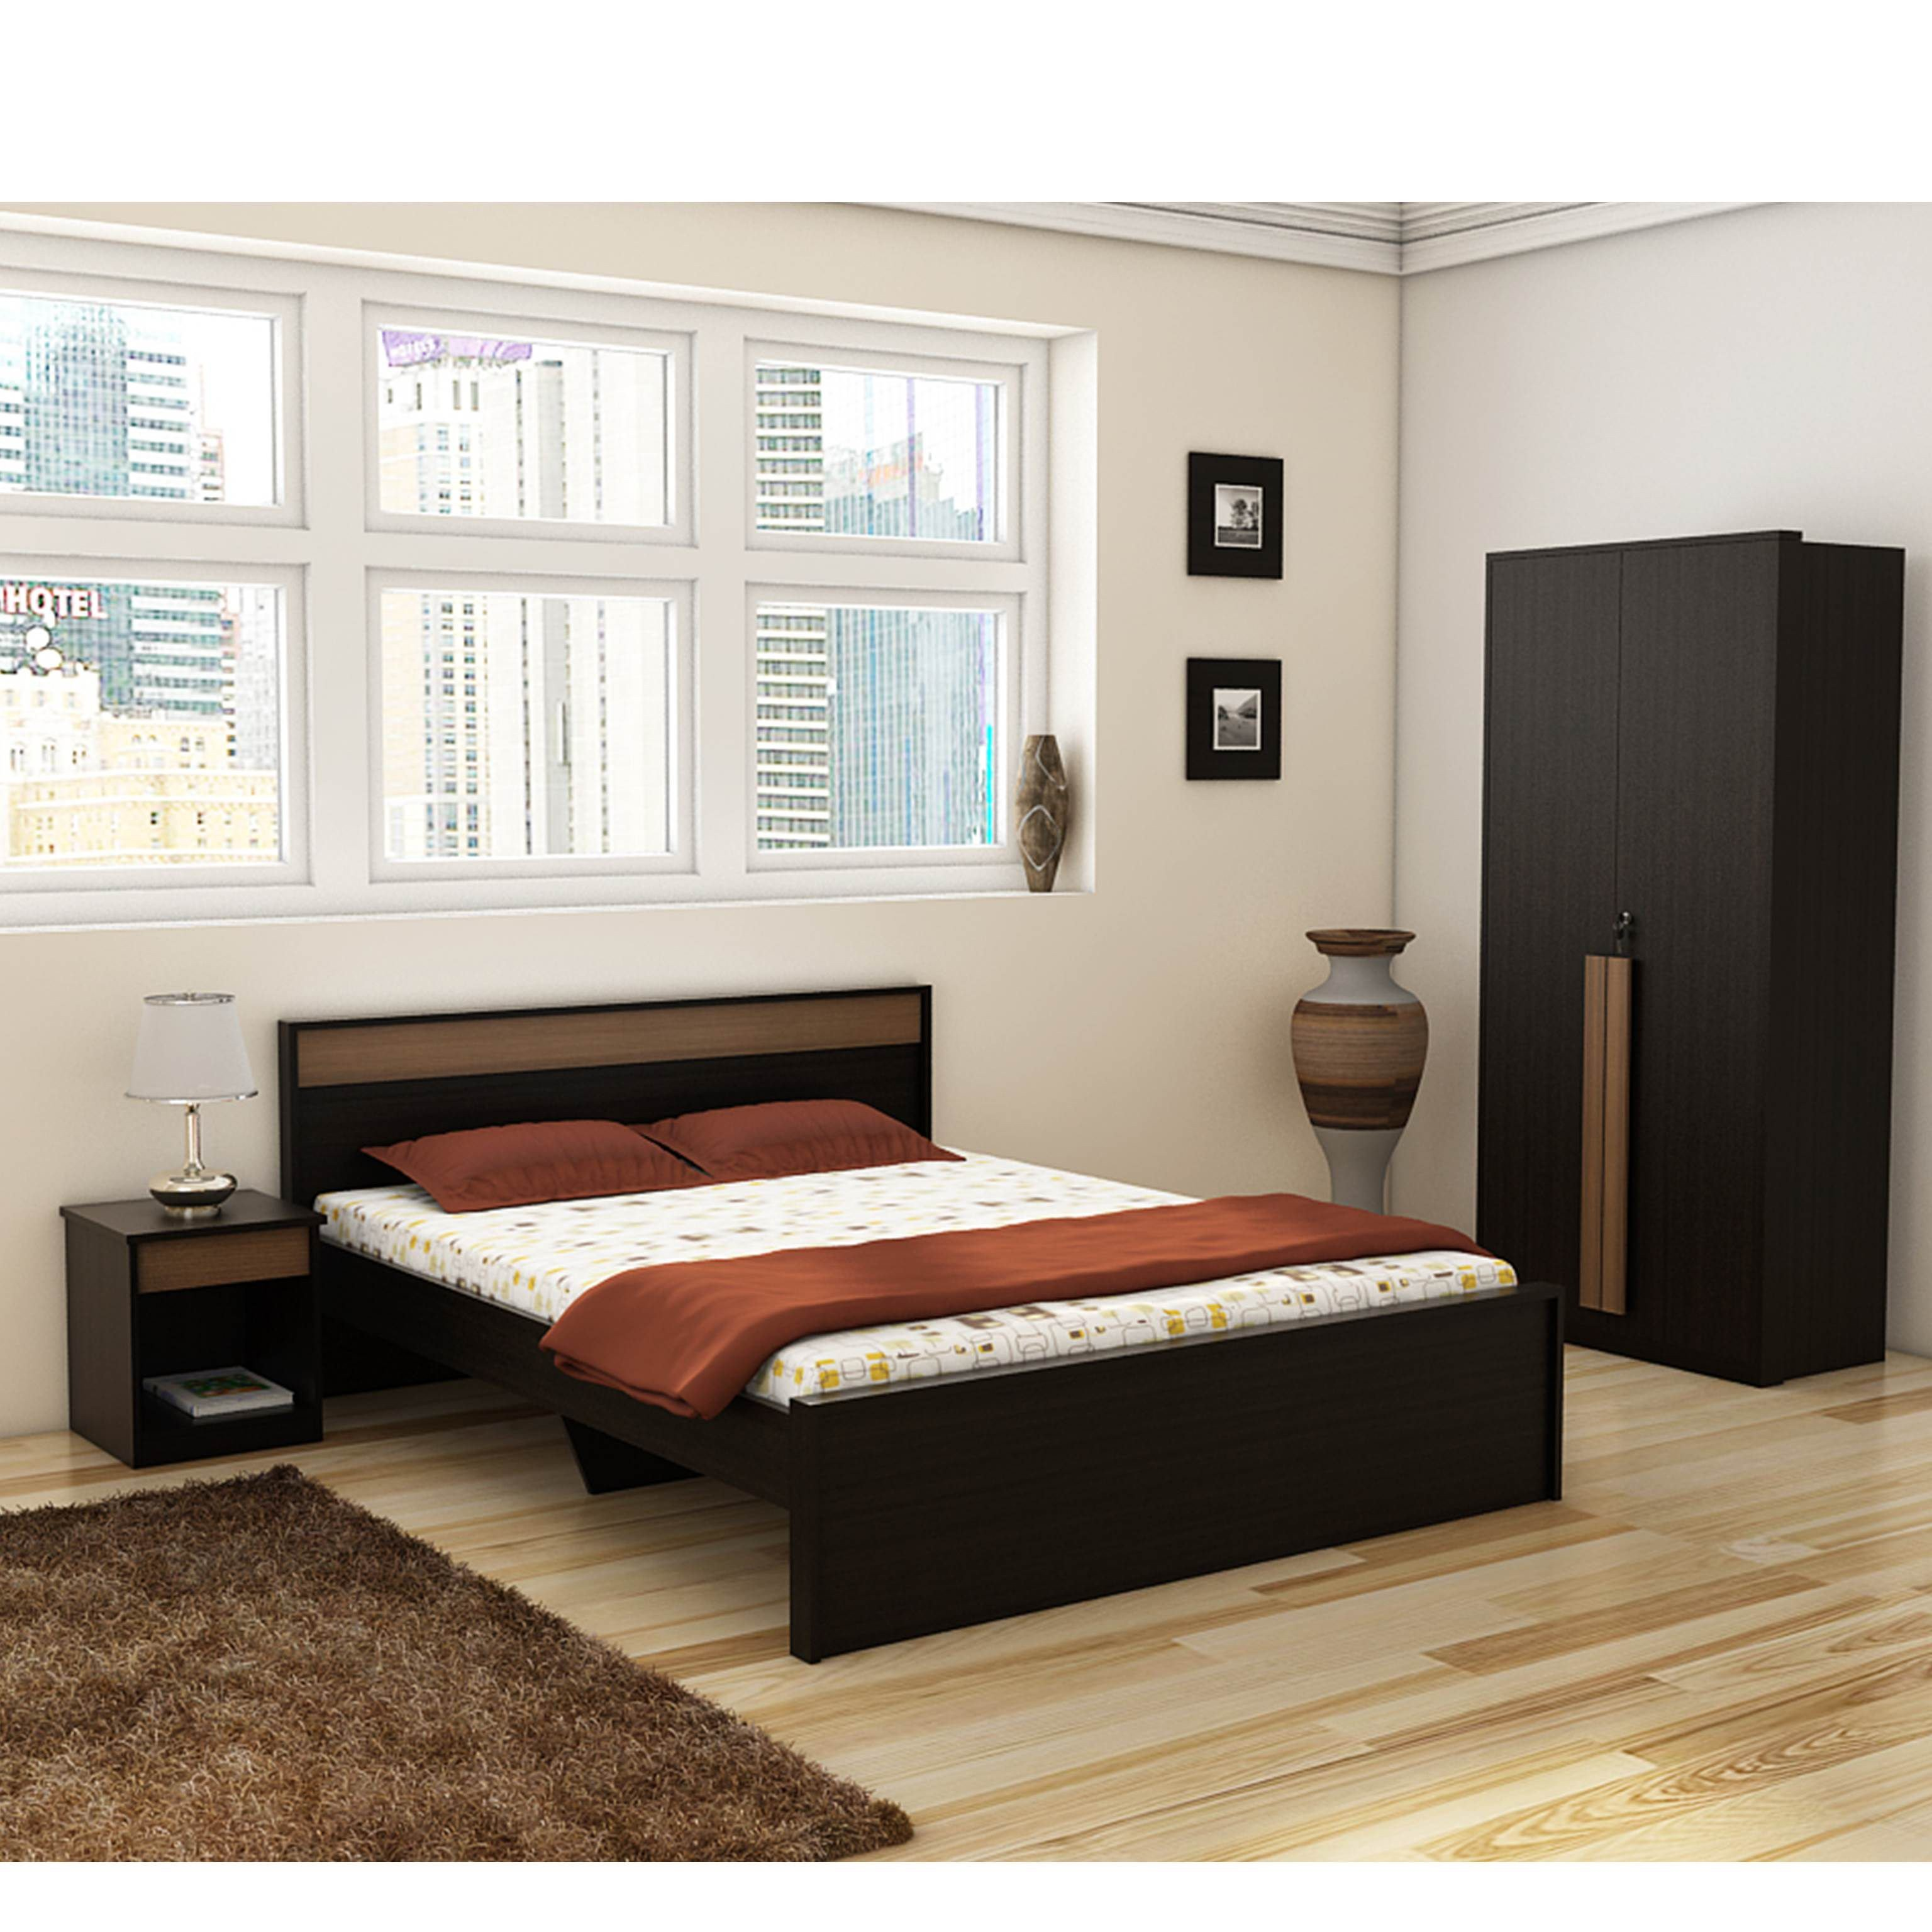 Black Bedroom Set Queen Unique Spacewood Ace Bedroom Set Queen Bed 2 Door Wardrobe